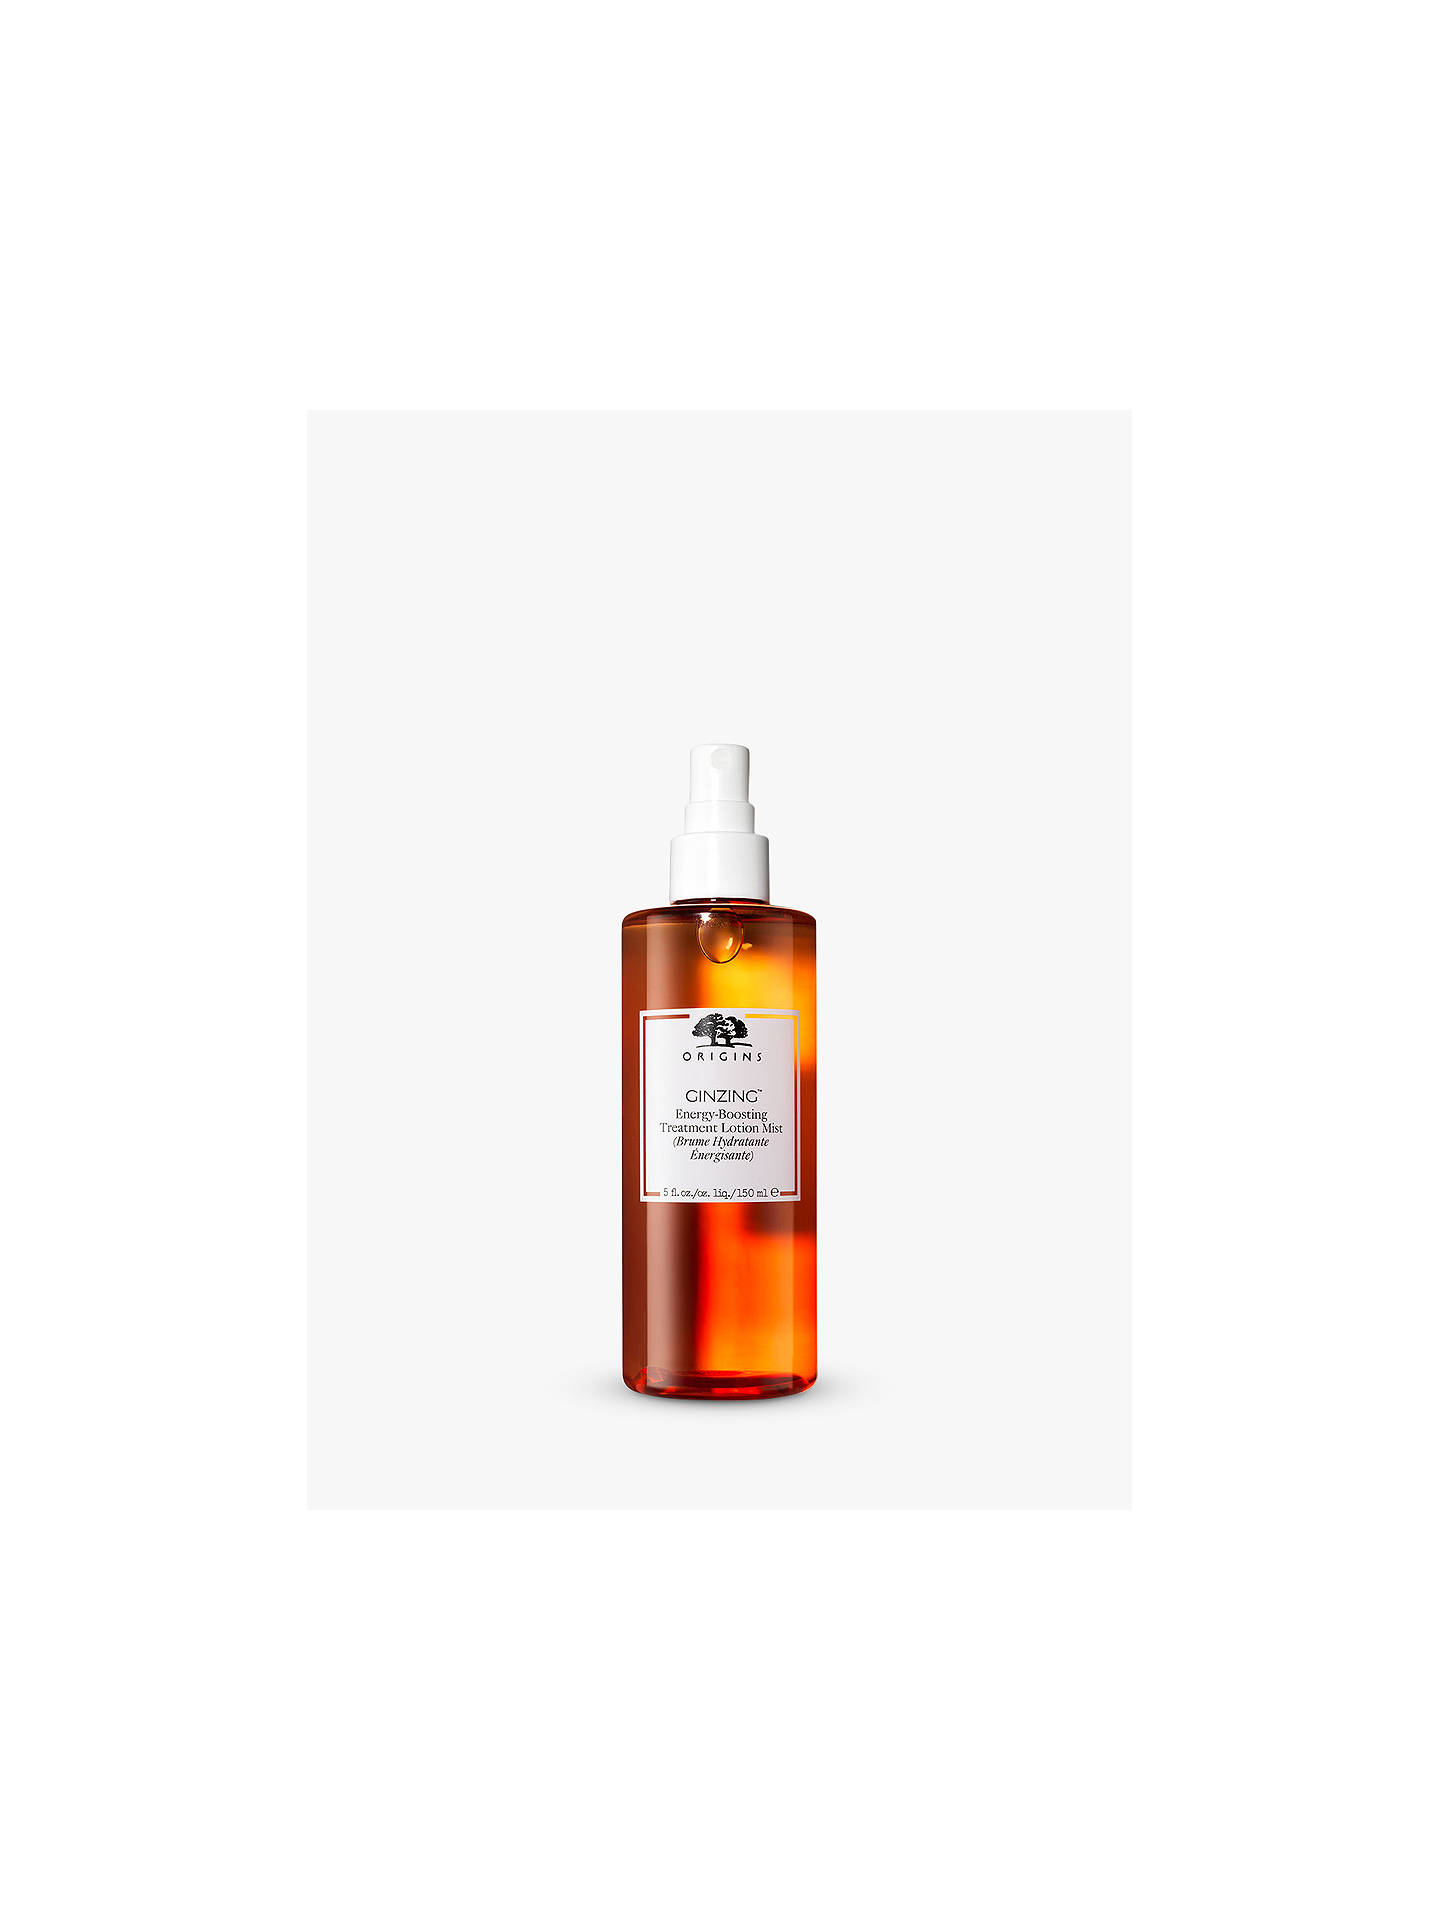 BuyOrigins GinZing™ Treatment Lotion Mist, 150ml Online at johnlewis.com